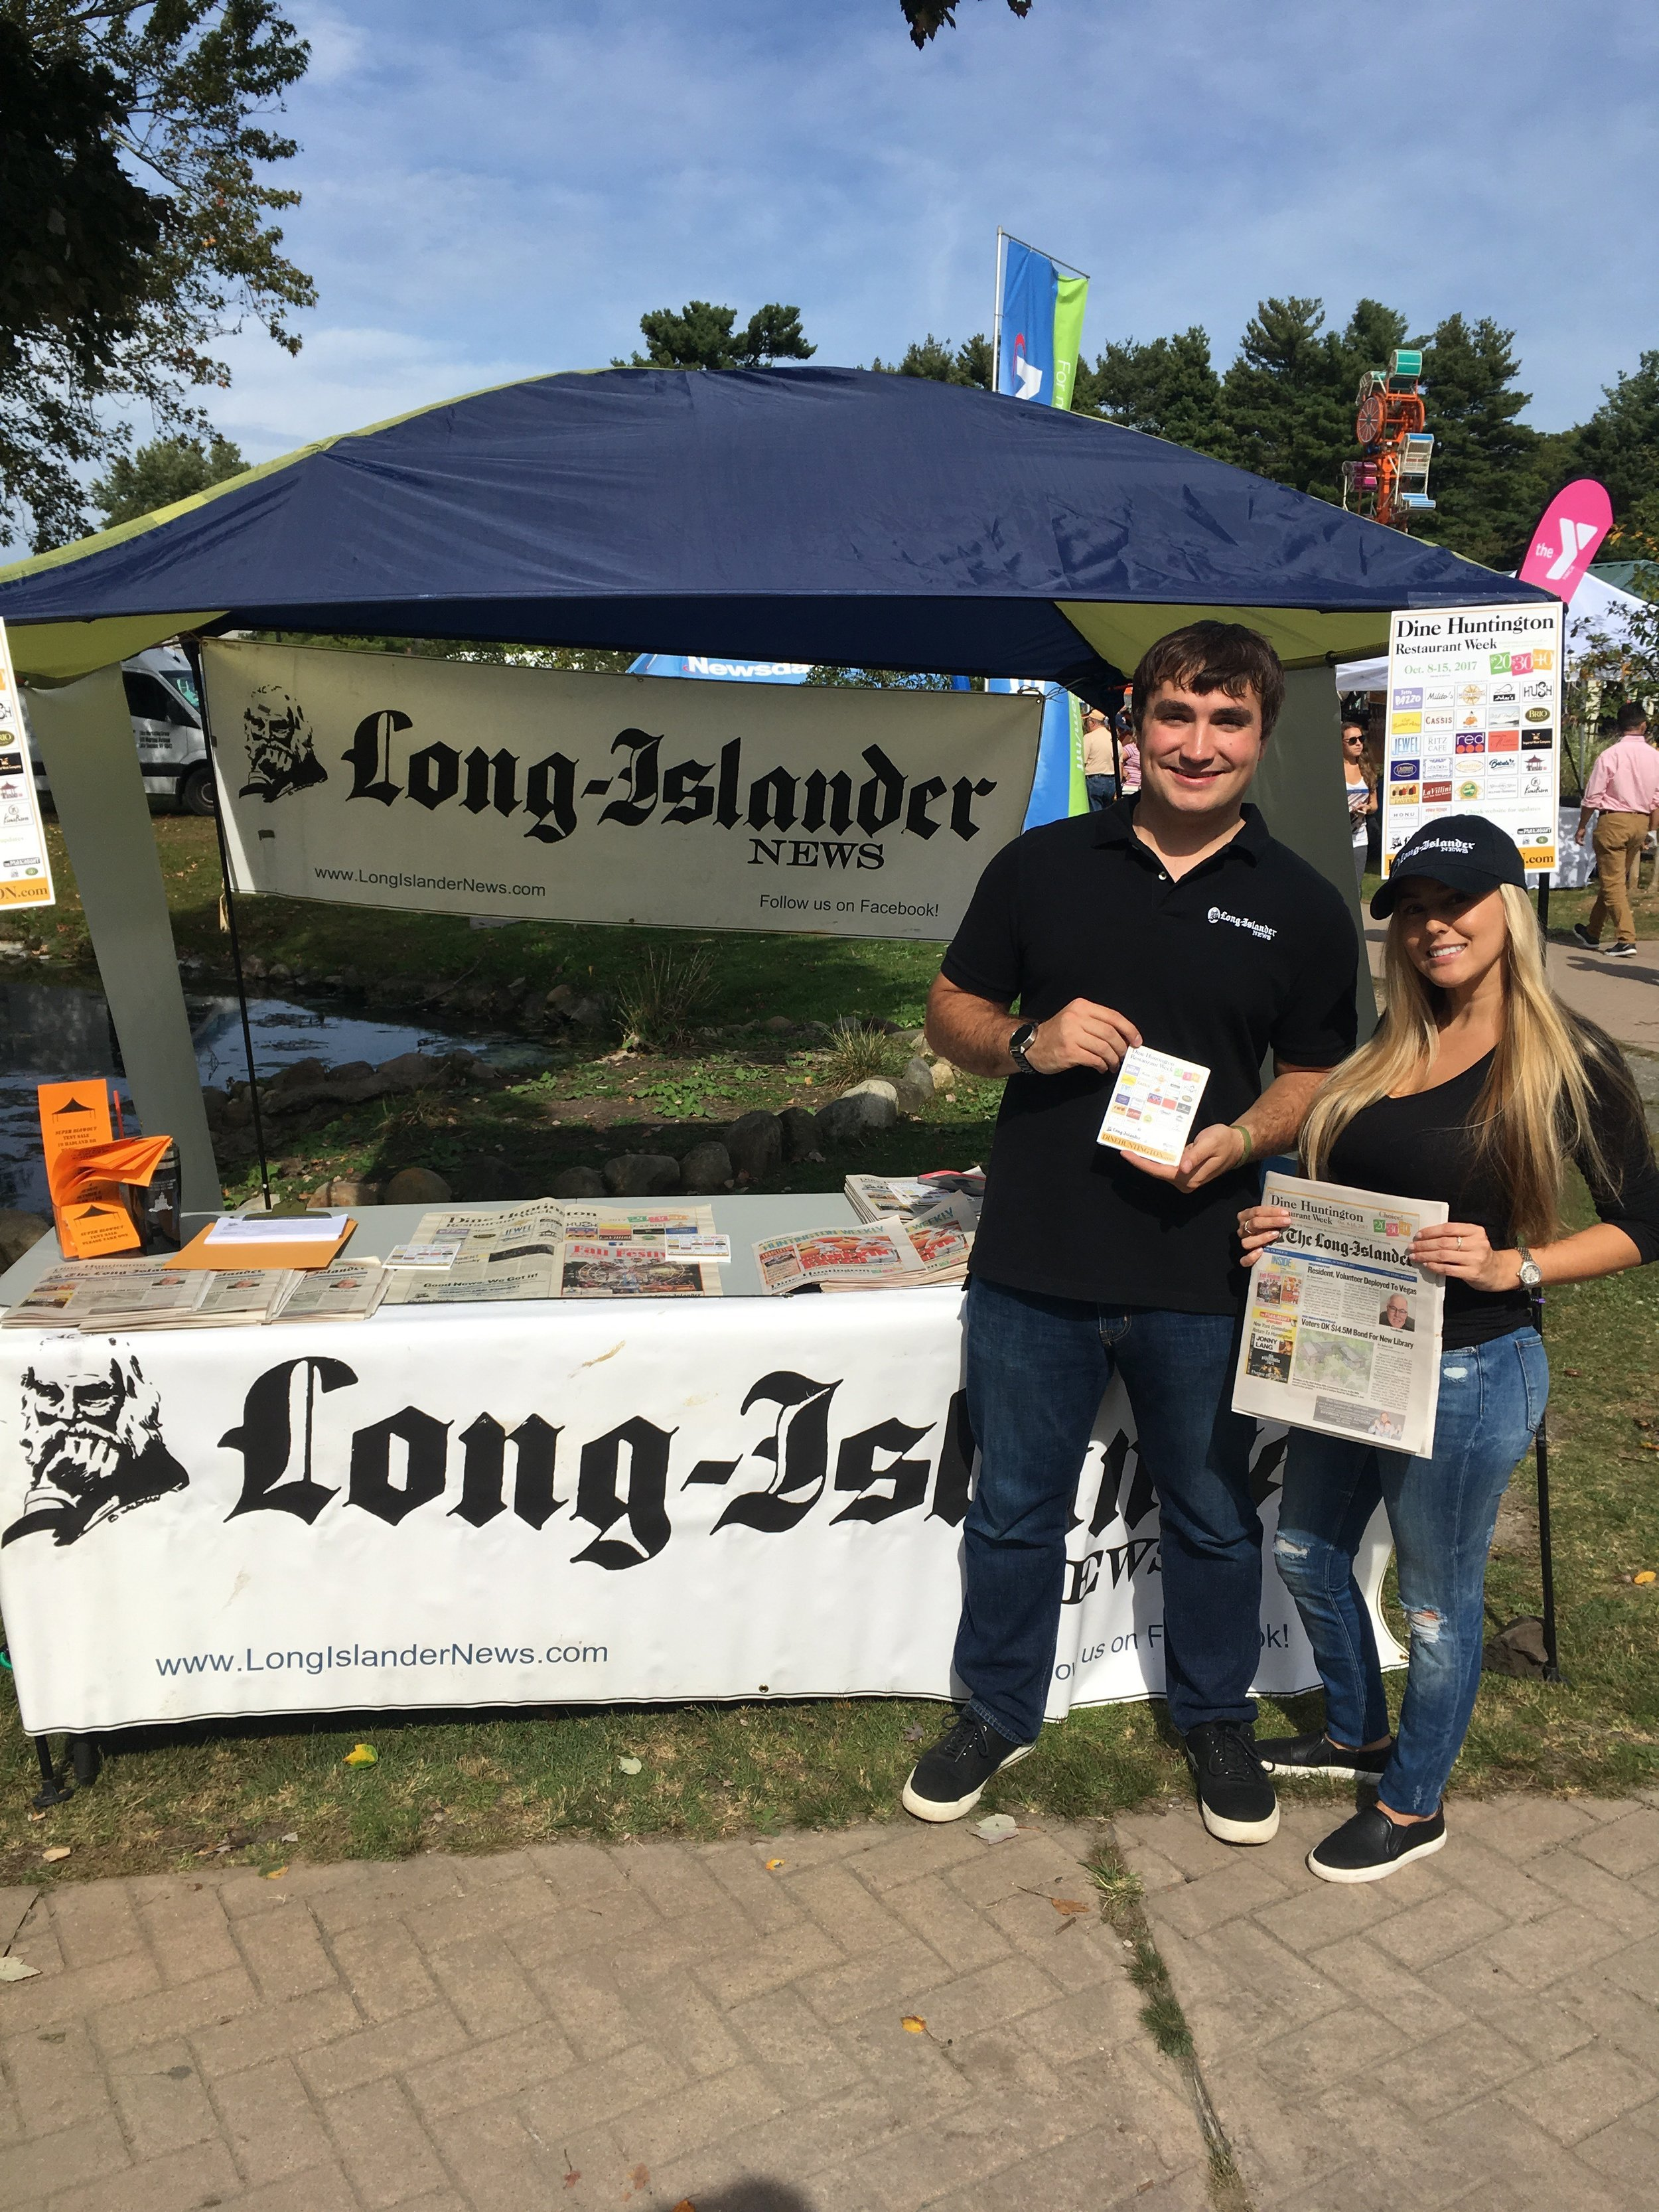 The Long-Islander team, including editor Andrew Wroblewski and volunteer Diana Murillo, handed out info on Dine Huntington Restaurant Week, running from Oct. 8-15, at the Long Island Fall Festival.   Long Islander News Photos/Paul Shapiro